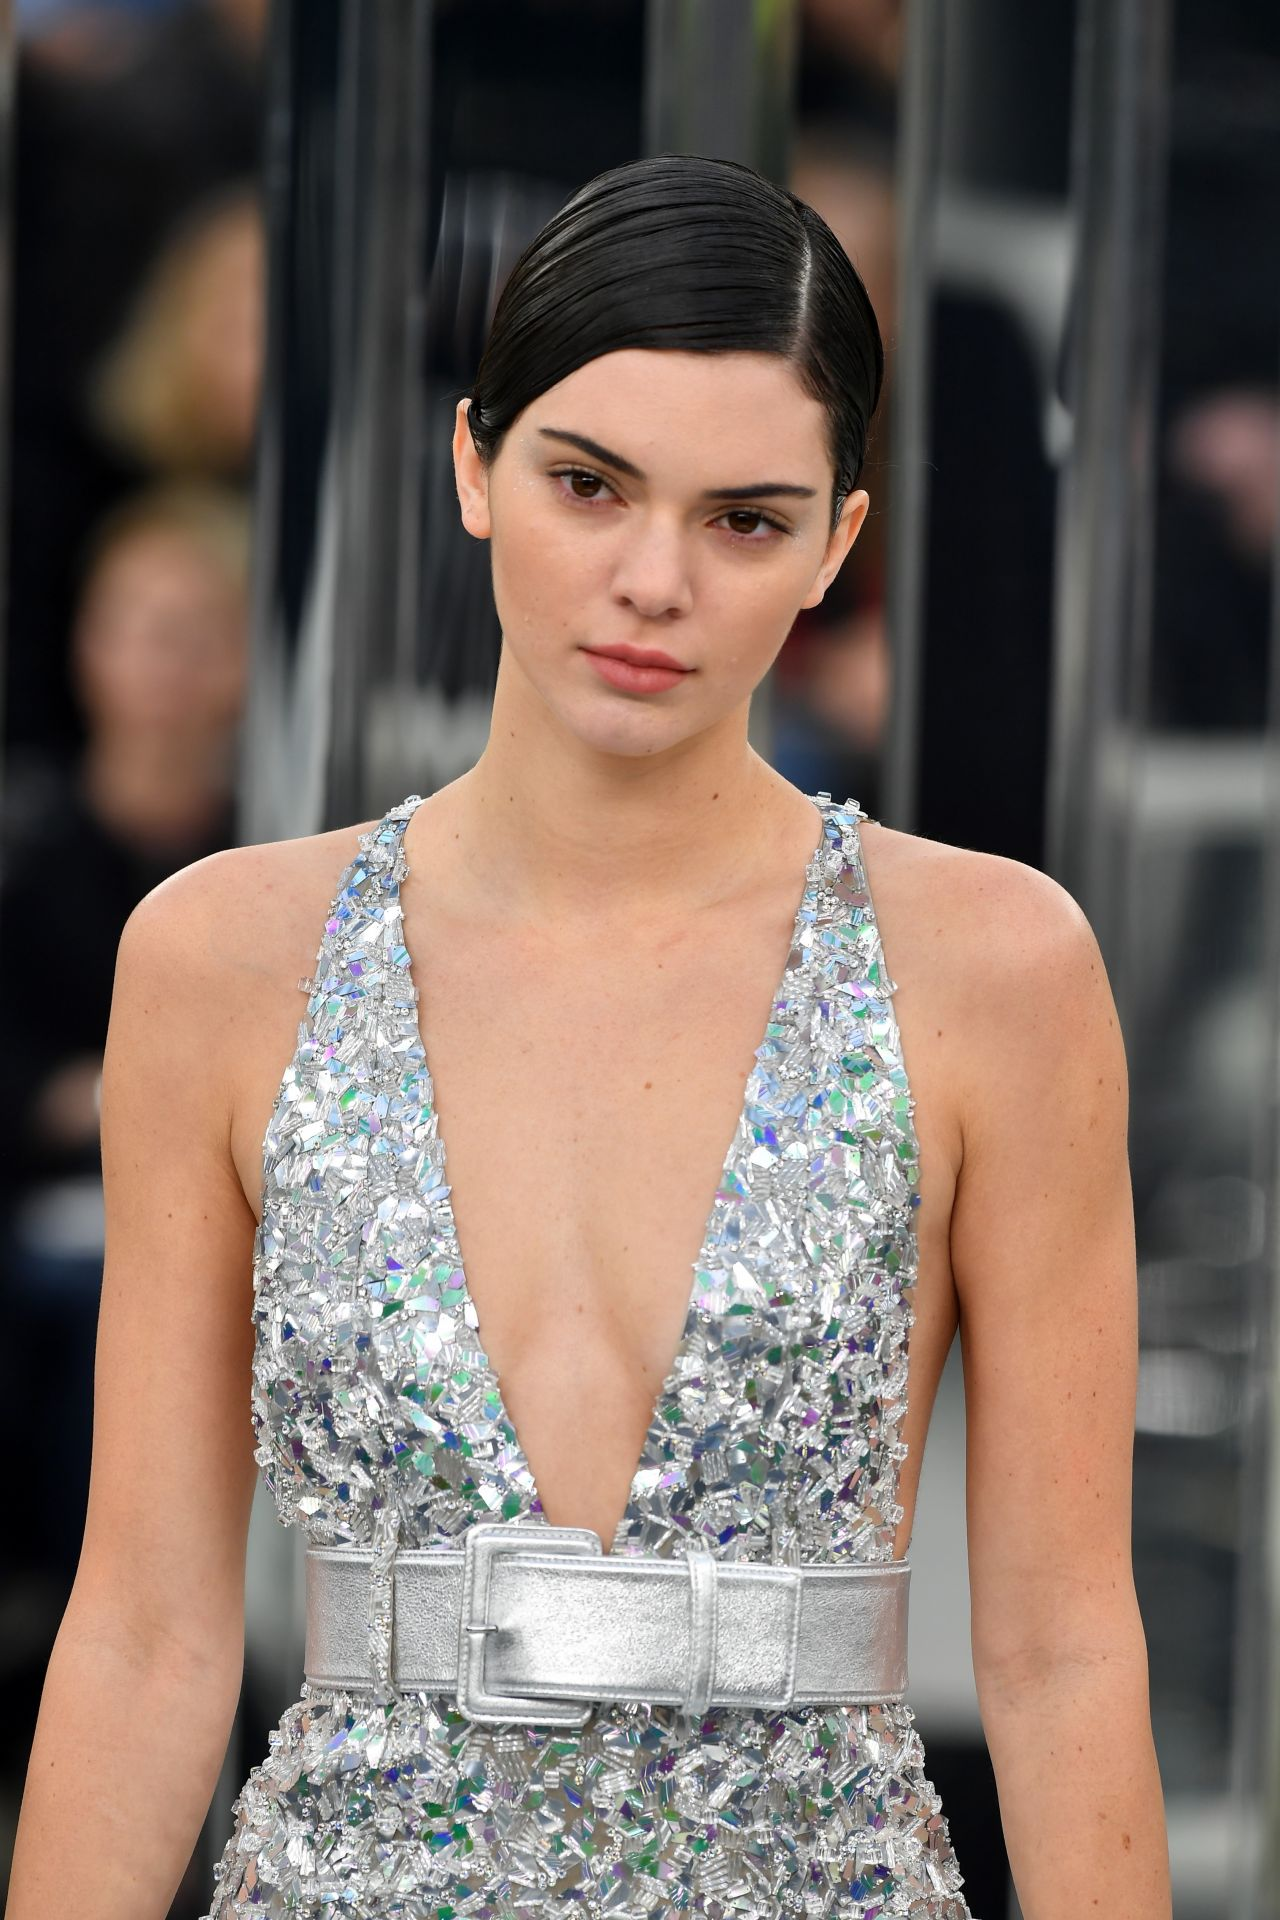 62ec8bcdcab6 Kendall Jenner - Chanel Show, Spring Summer 2017 Haute Couture Fashion Week  in Paris 1